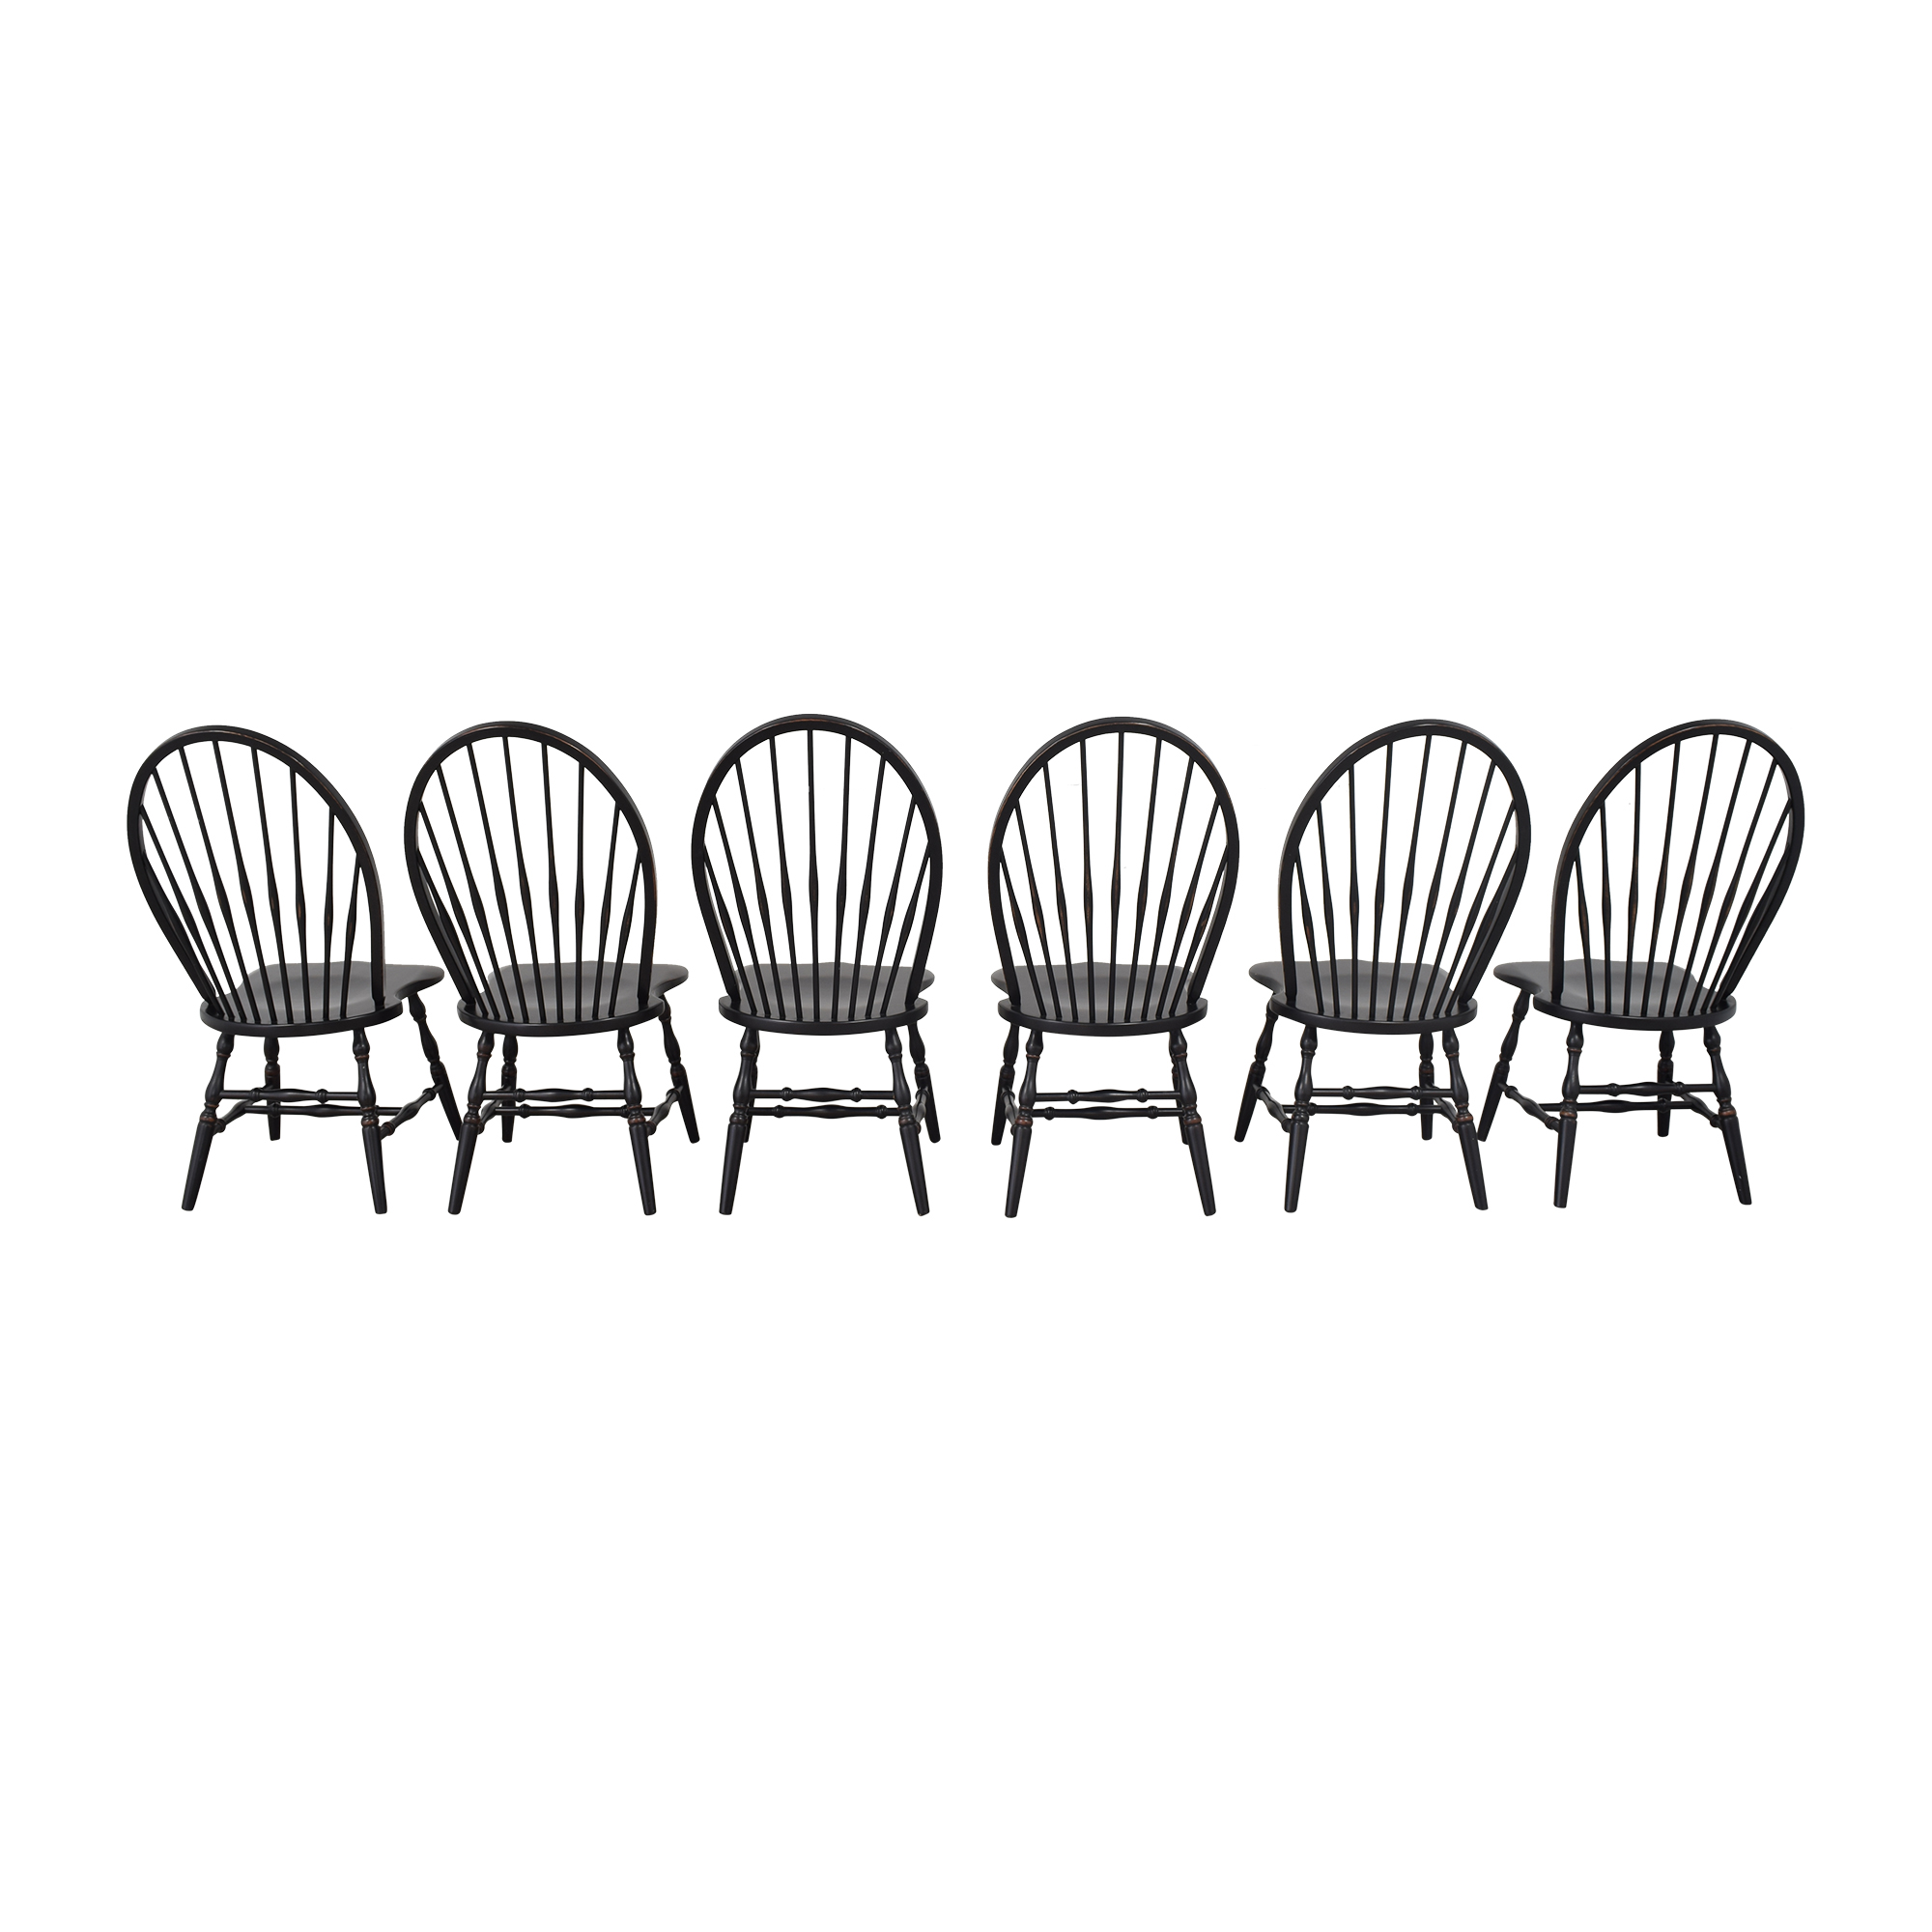 Country Willow Country Willow Windsor Dining Chairs second hand